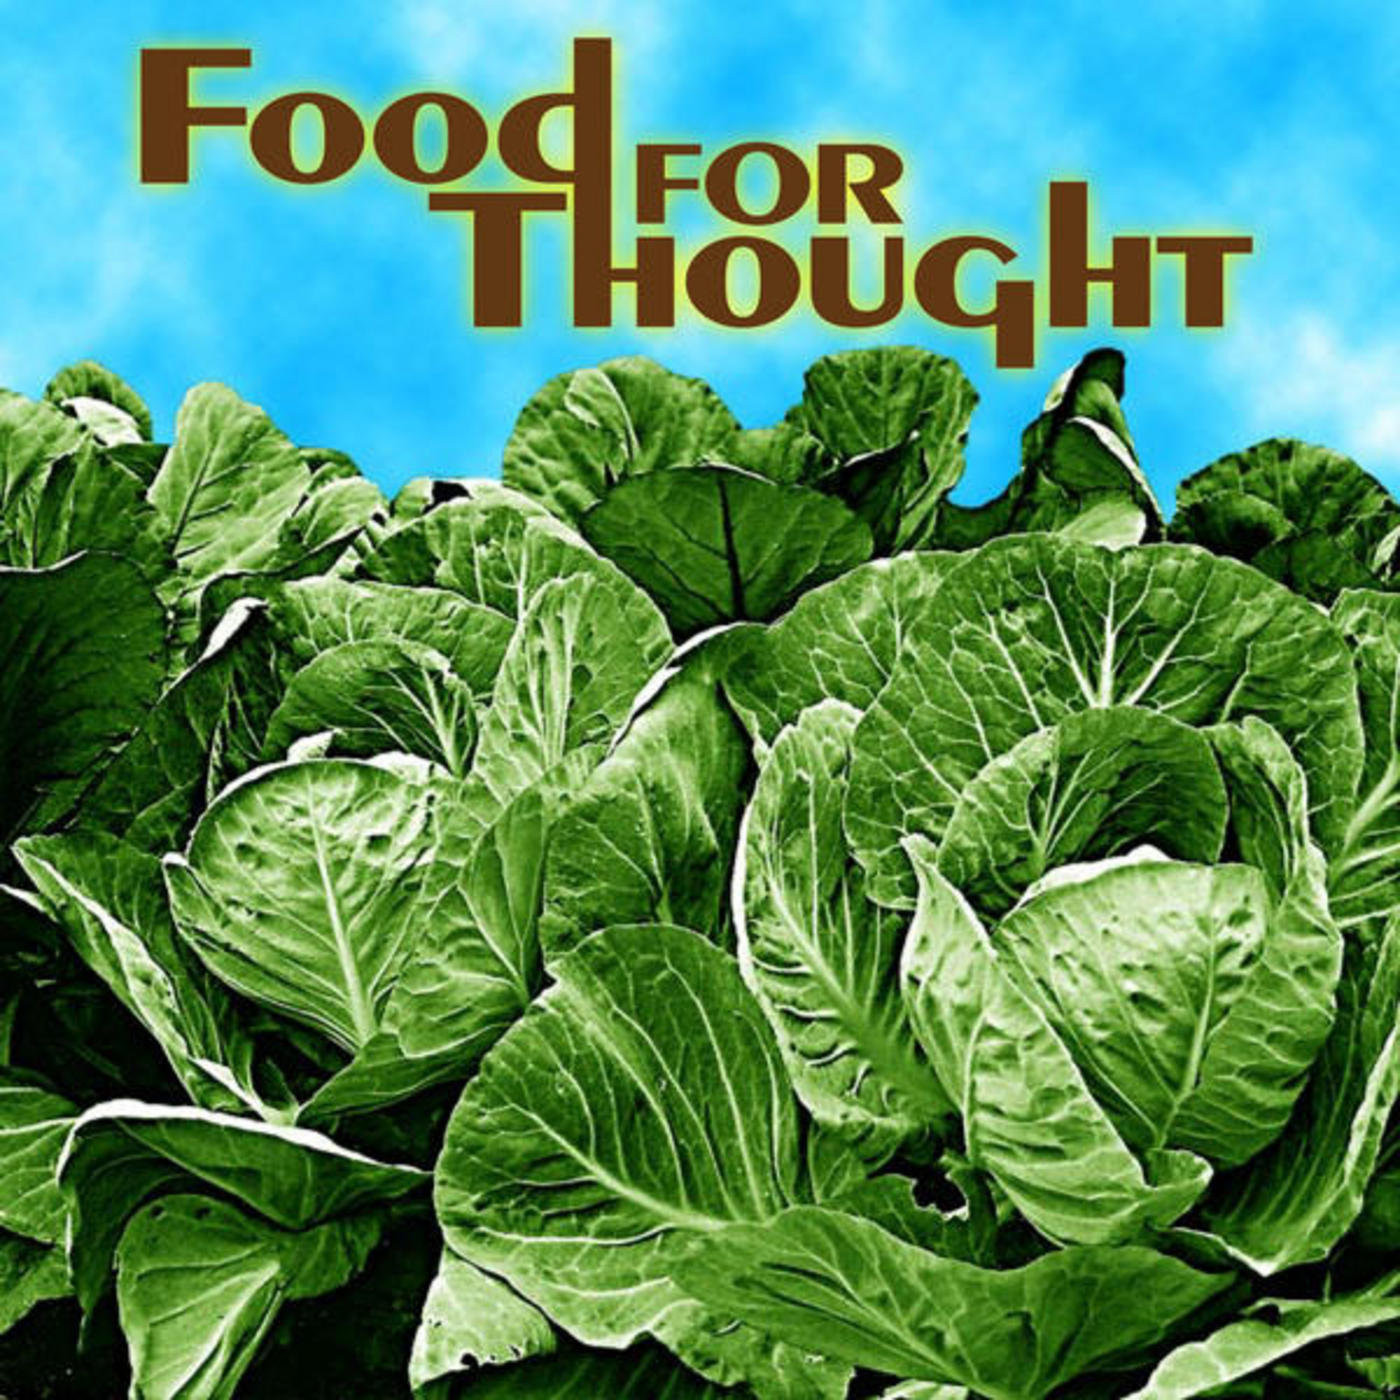 Food For Thought: May 13, 2011 - Isaiah Webb and Todd Heustis, Mad River Community Hospital Farm